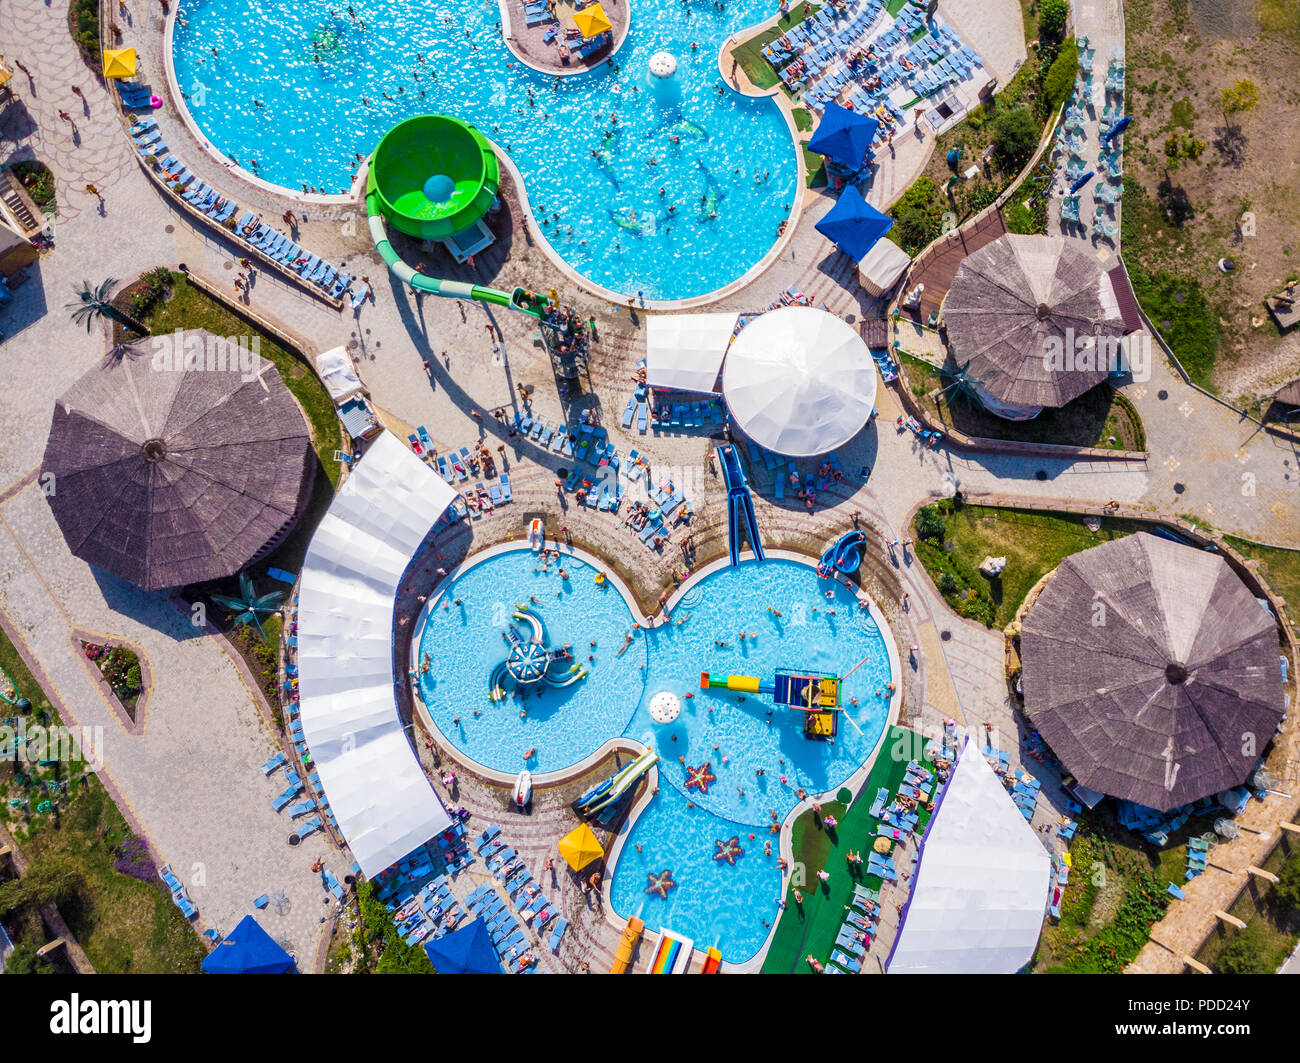 Aerial drone view looking straight down from above colorful summer time fun at water park Stock Photo